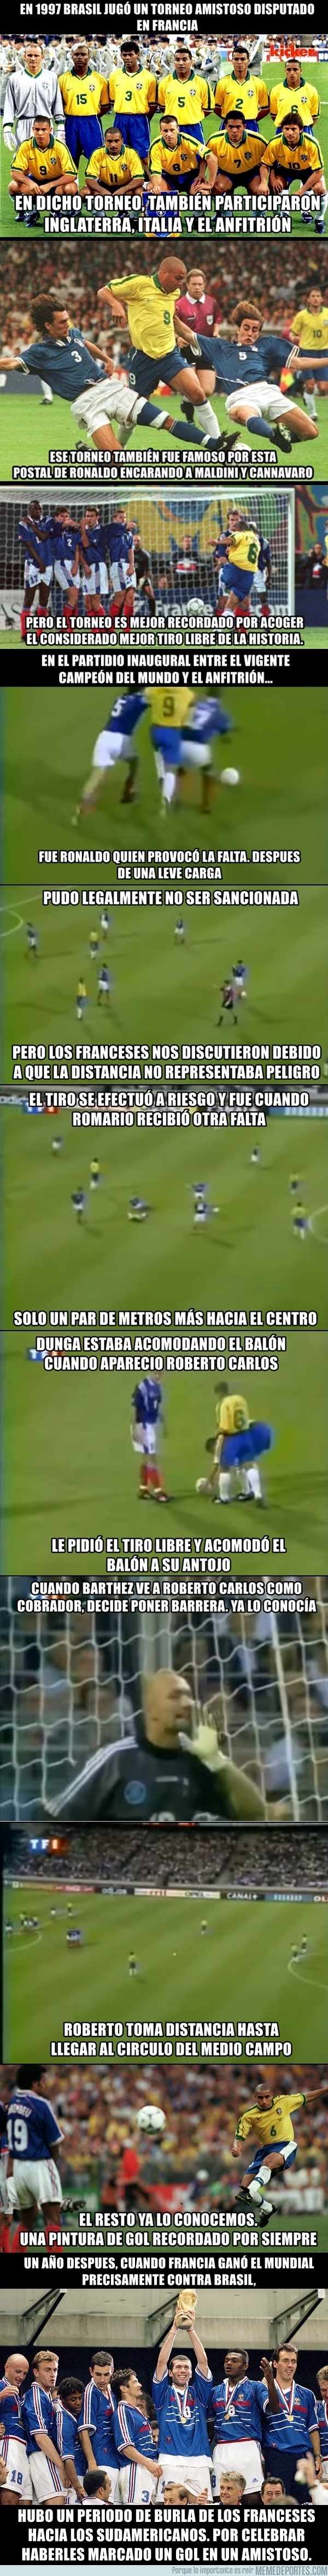 994167 - El background del gol de Roberto Carlos a Francia